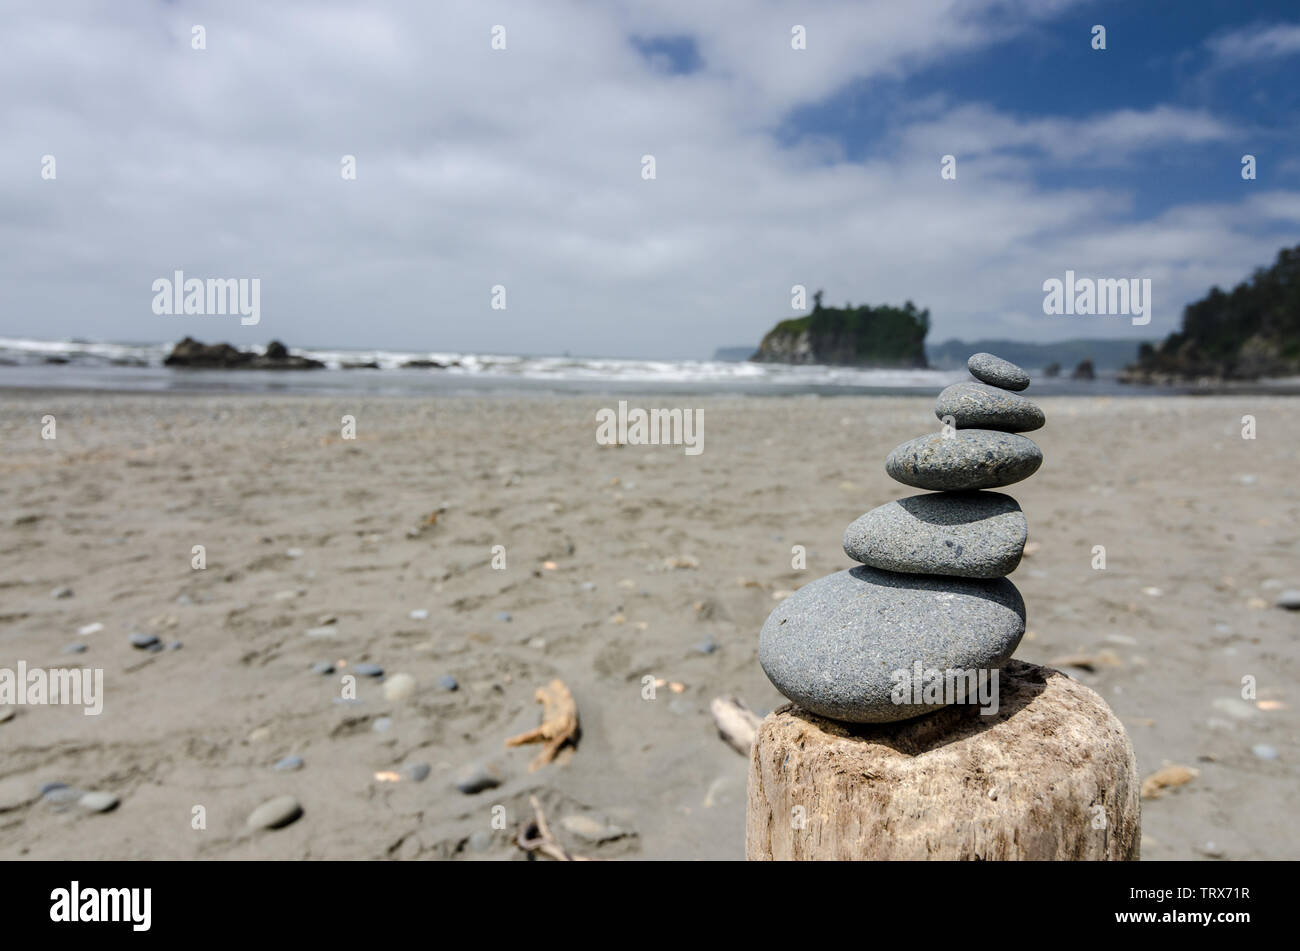 stone stacking at the beach somewhere in USA - Stock Image